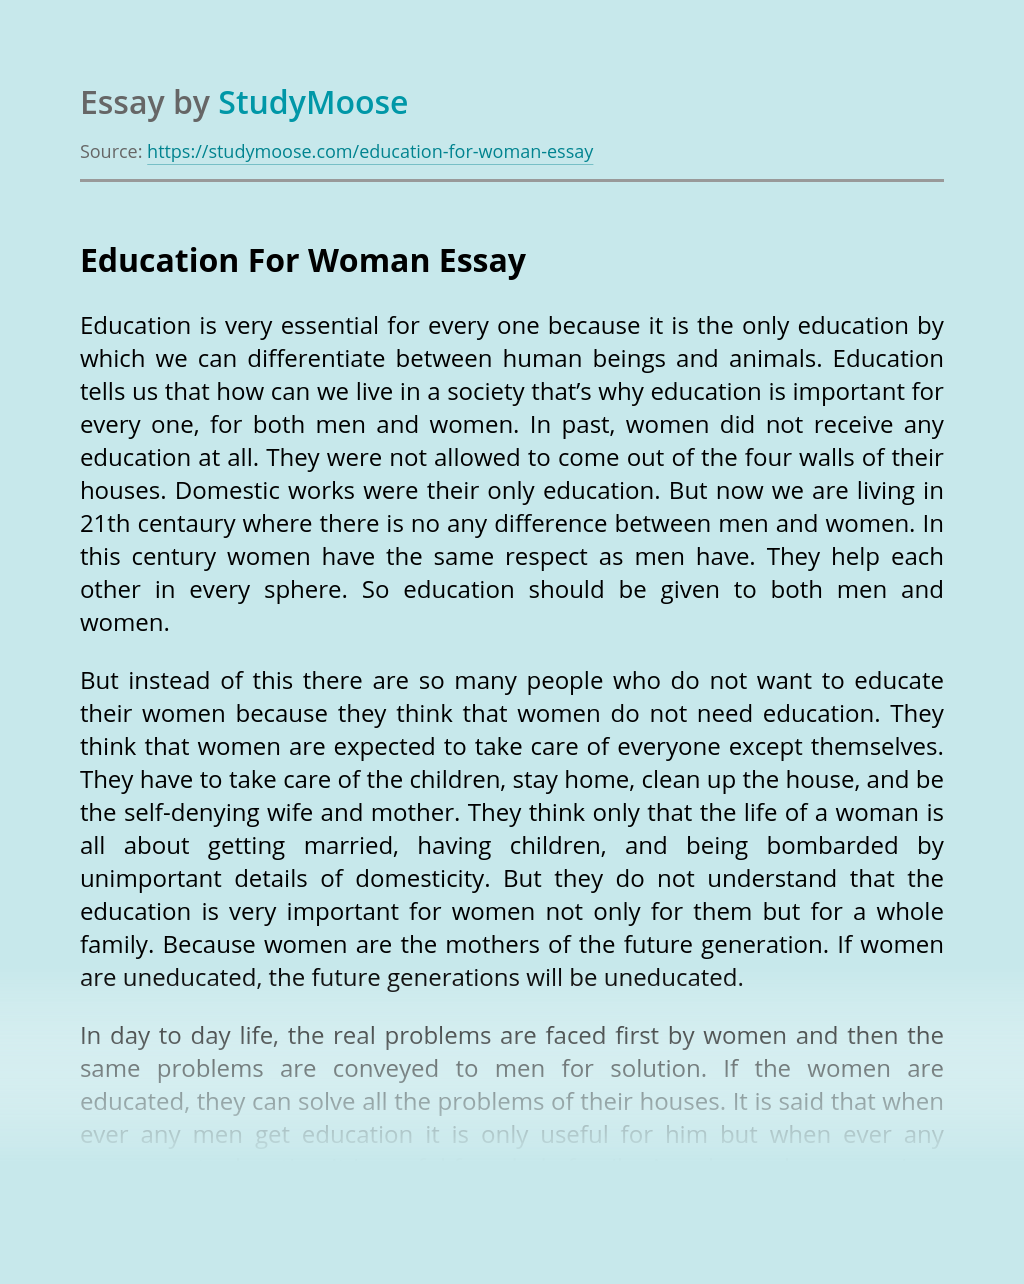 Education For Woman